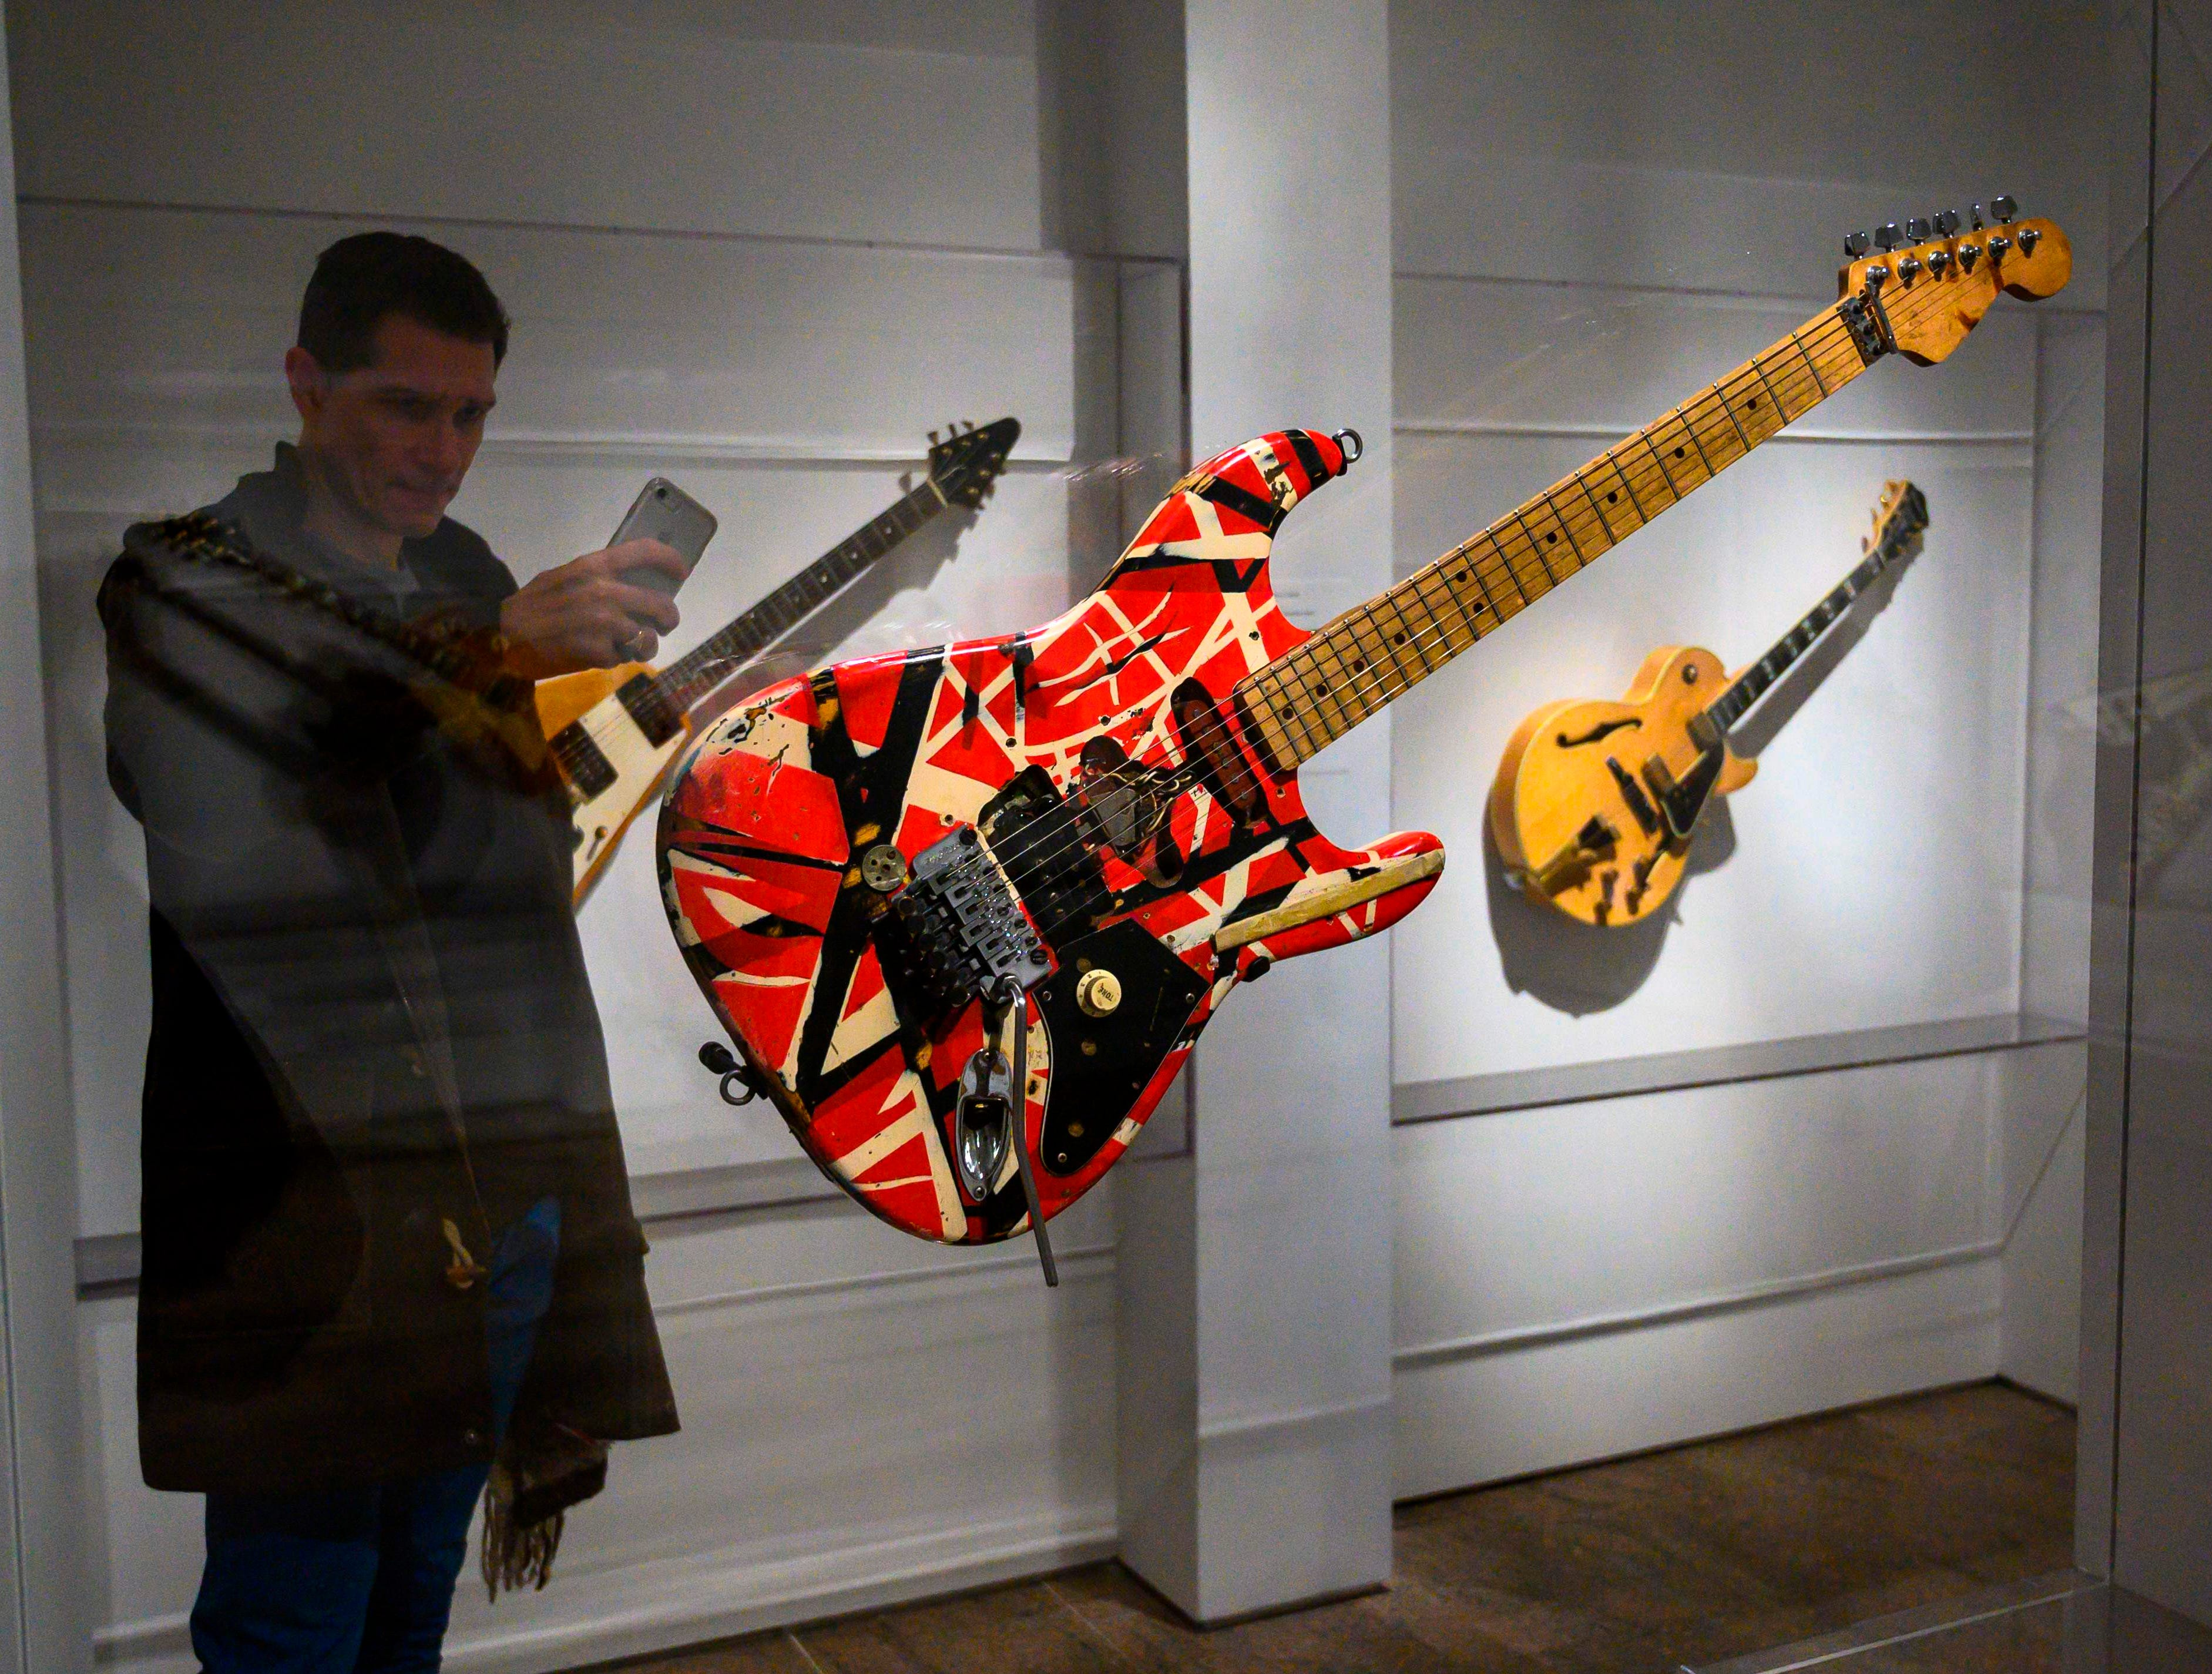 """A reporter takes a photo of """"Frankenstein"""", a guitar used by Eddie Van Halen, during a media preview for an exhibit called """"Play It Loud: Instruments of Rock and Roll"""" at the Metropolitan Museum of Art in New York on April 1, 2019."""